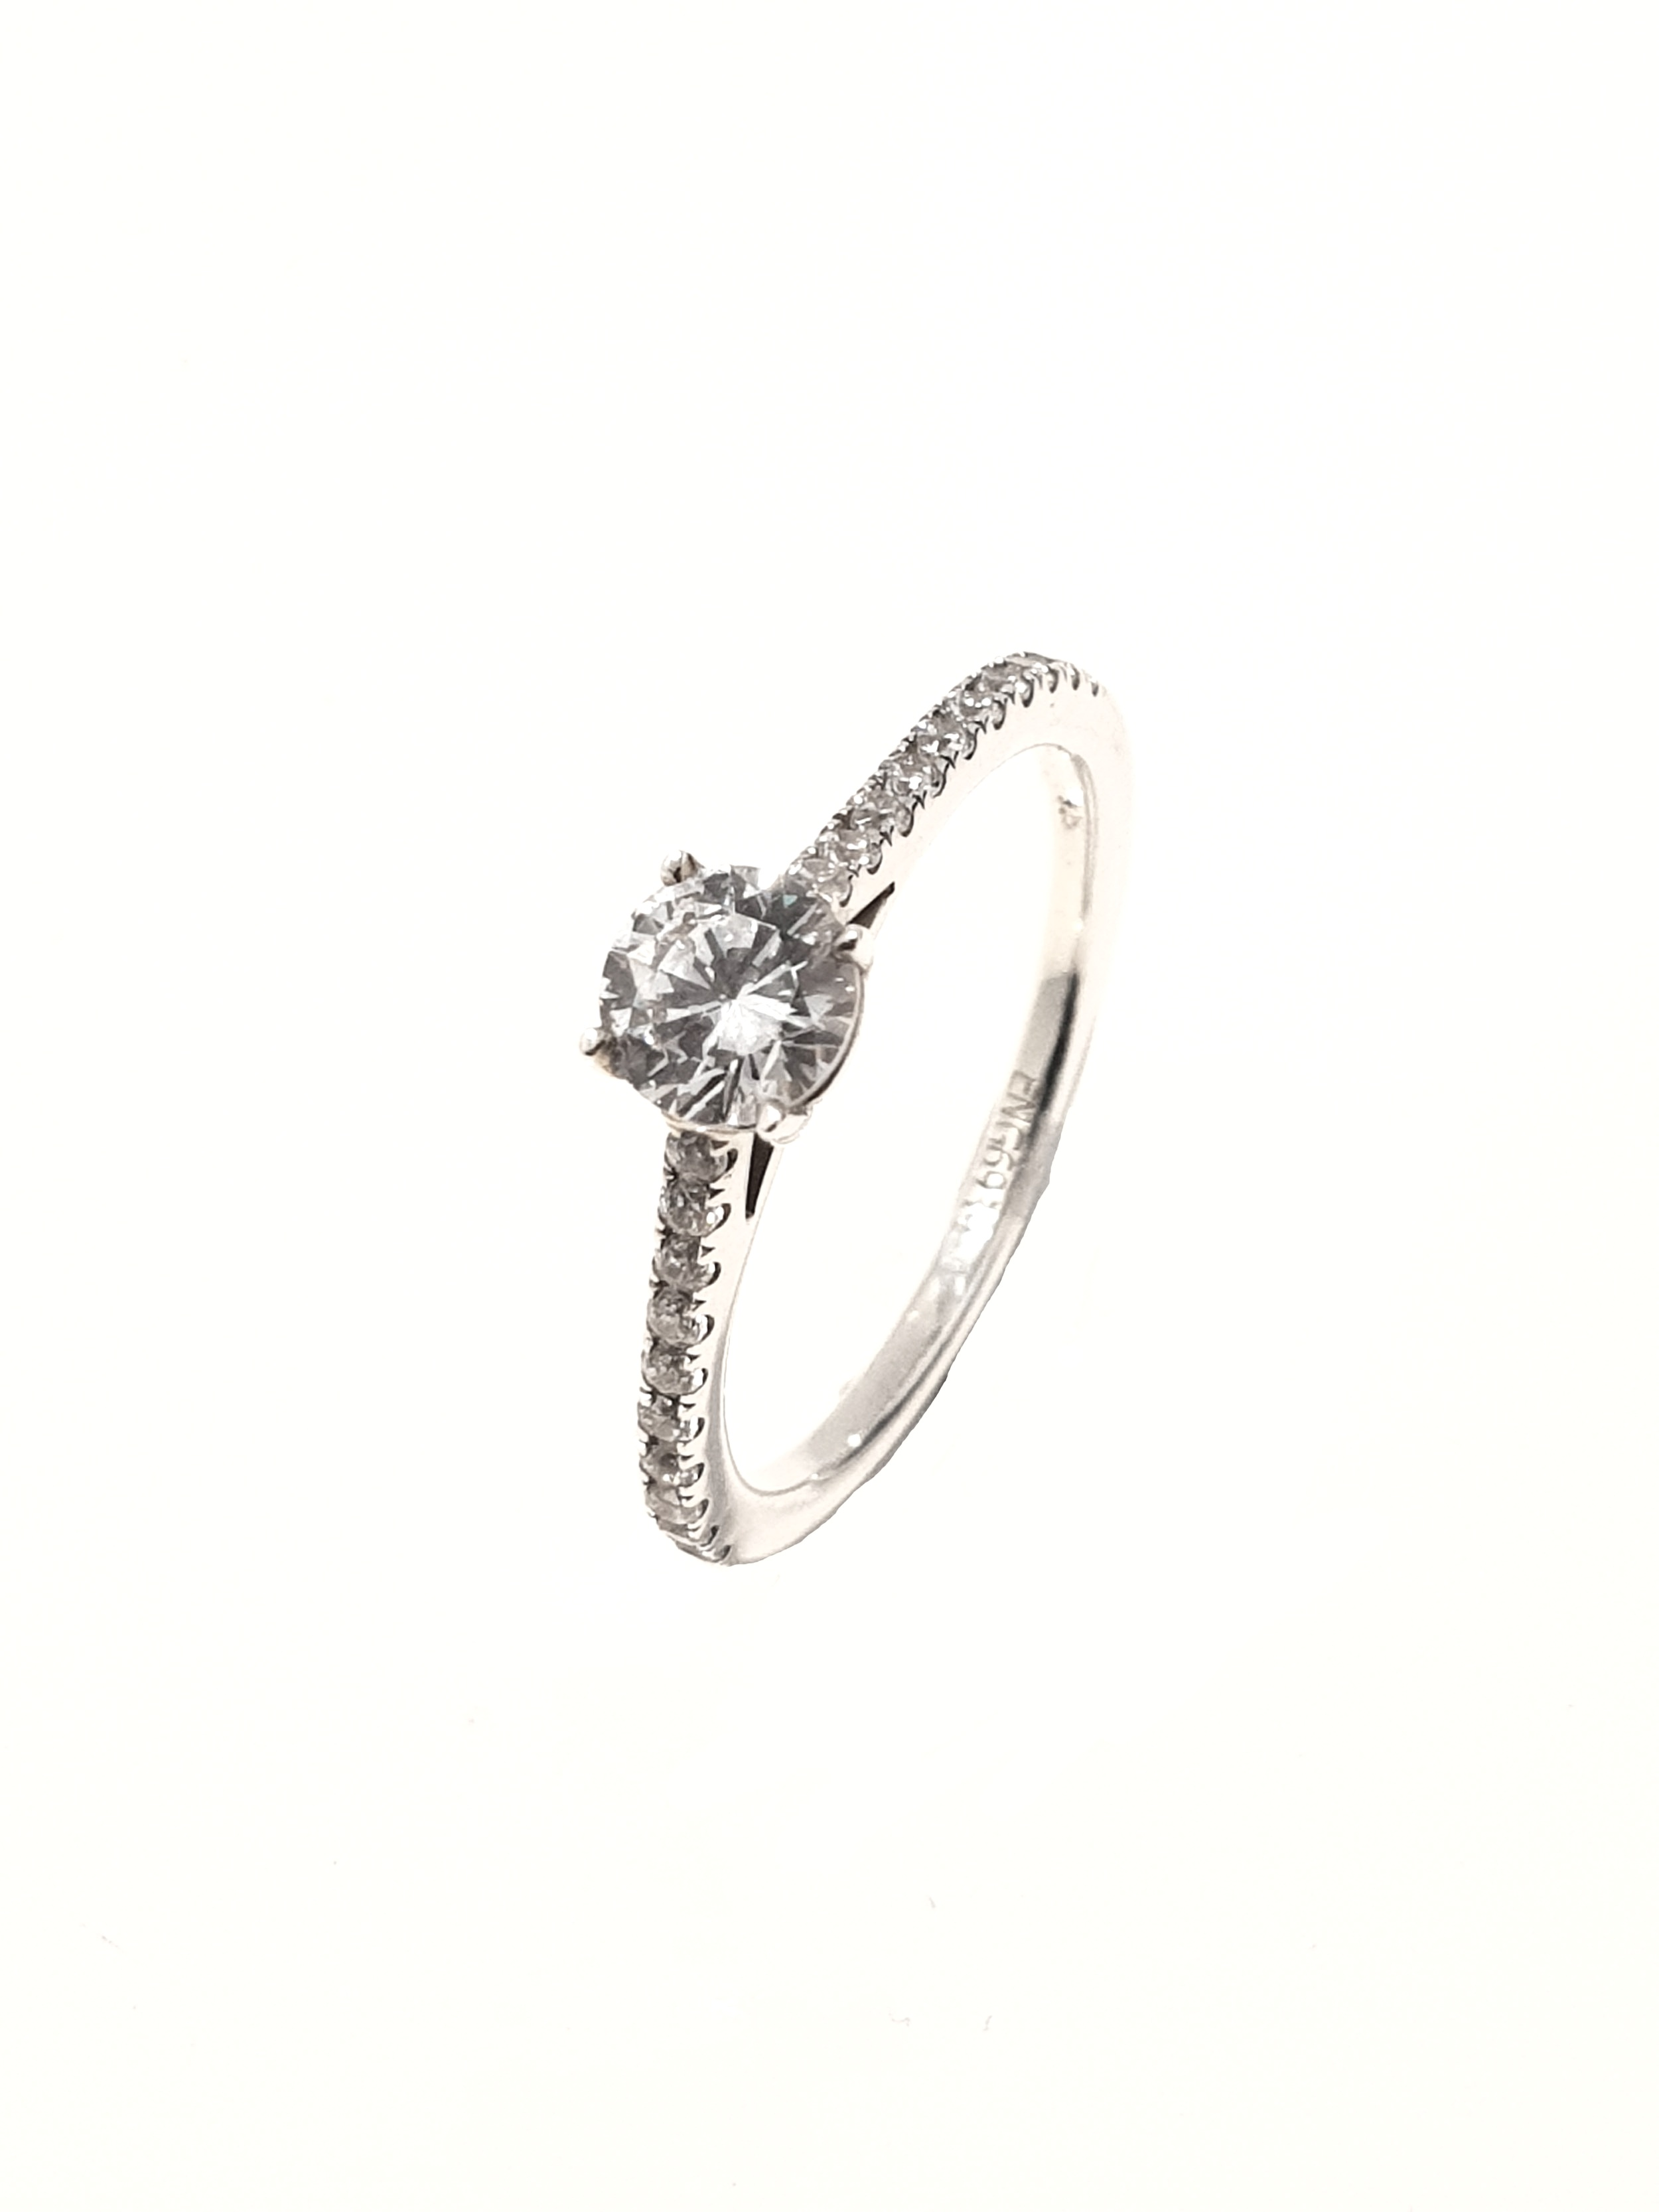 Raphael Collection, Brilliant 4 Claw Set Ring  .70ct, G, Si1 + .20ct shoulders.  Stock Code: Z1423  18ct White Gold: £2775  Platinum: £2900  Made To Order, approx 3 weeks.